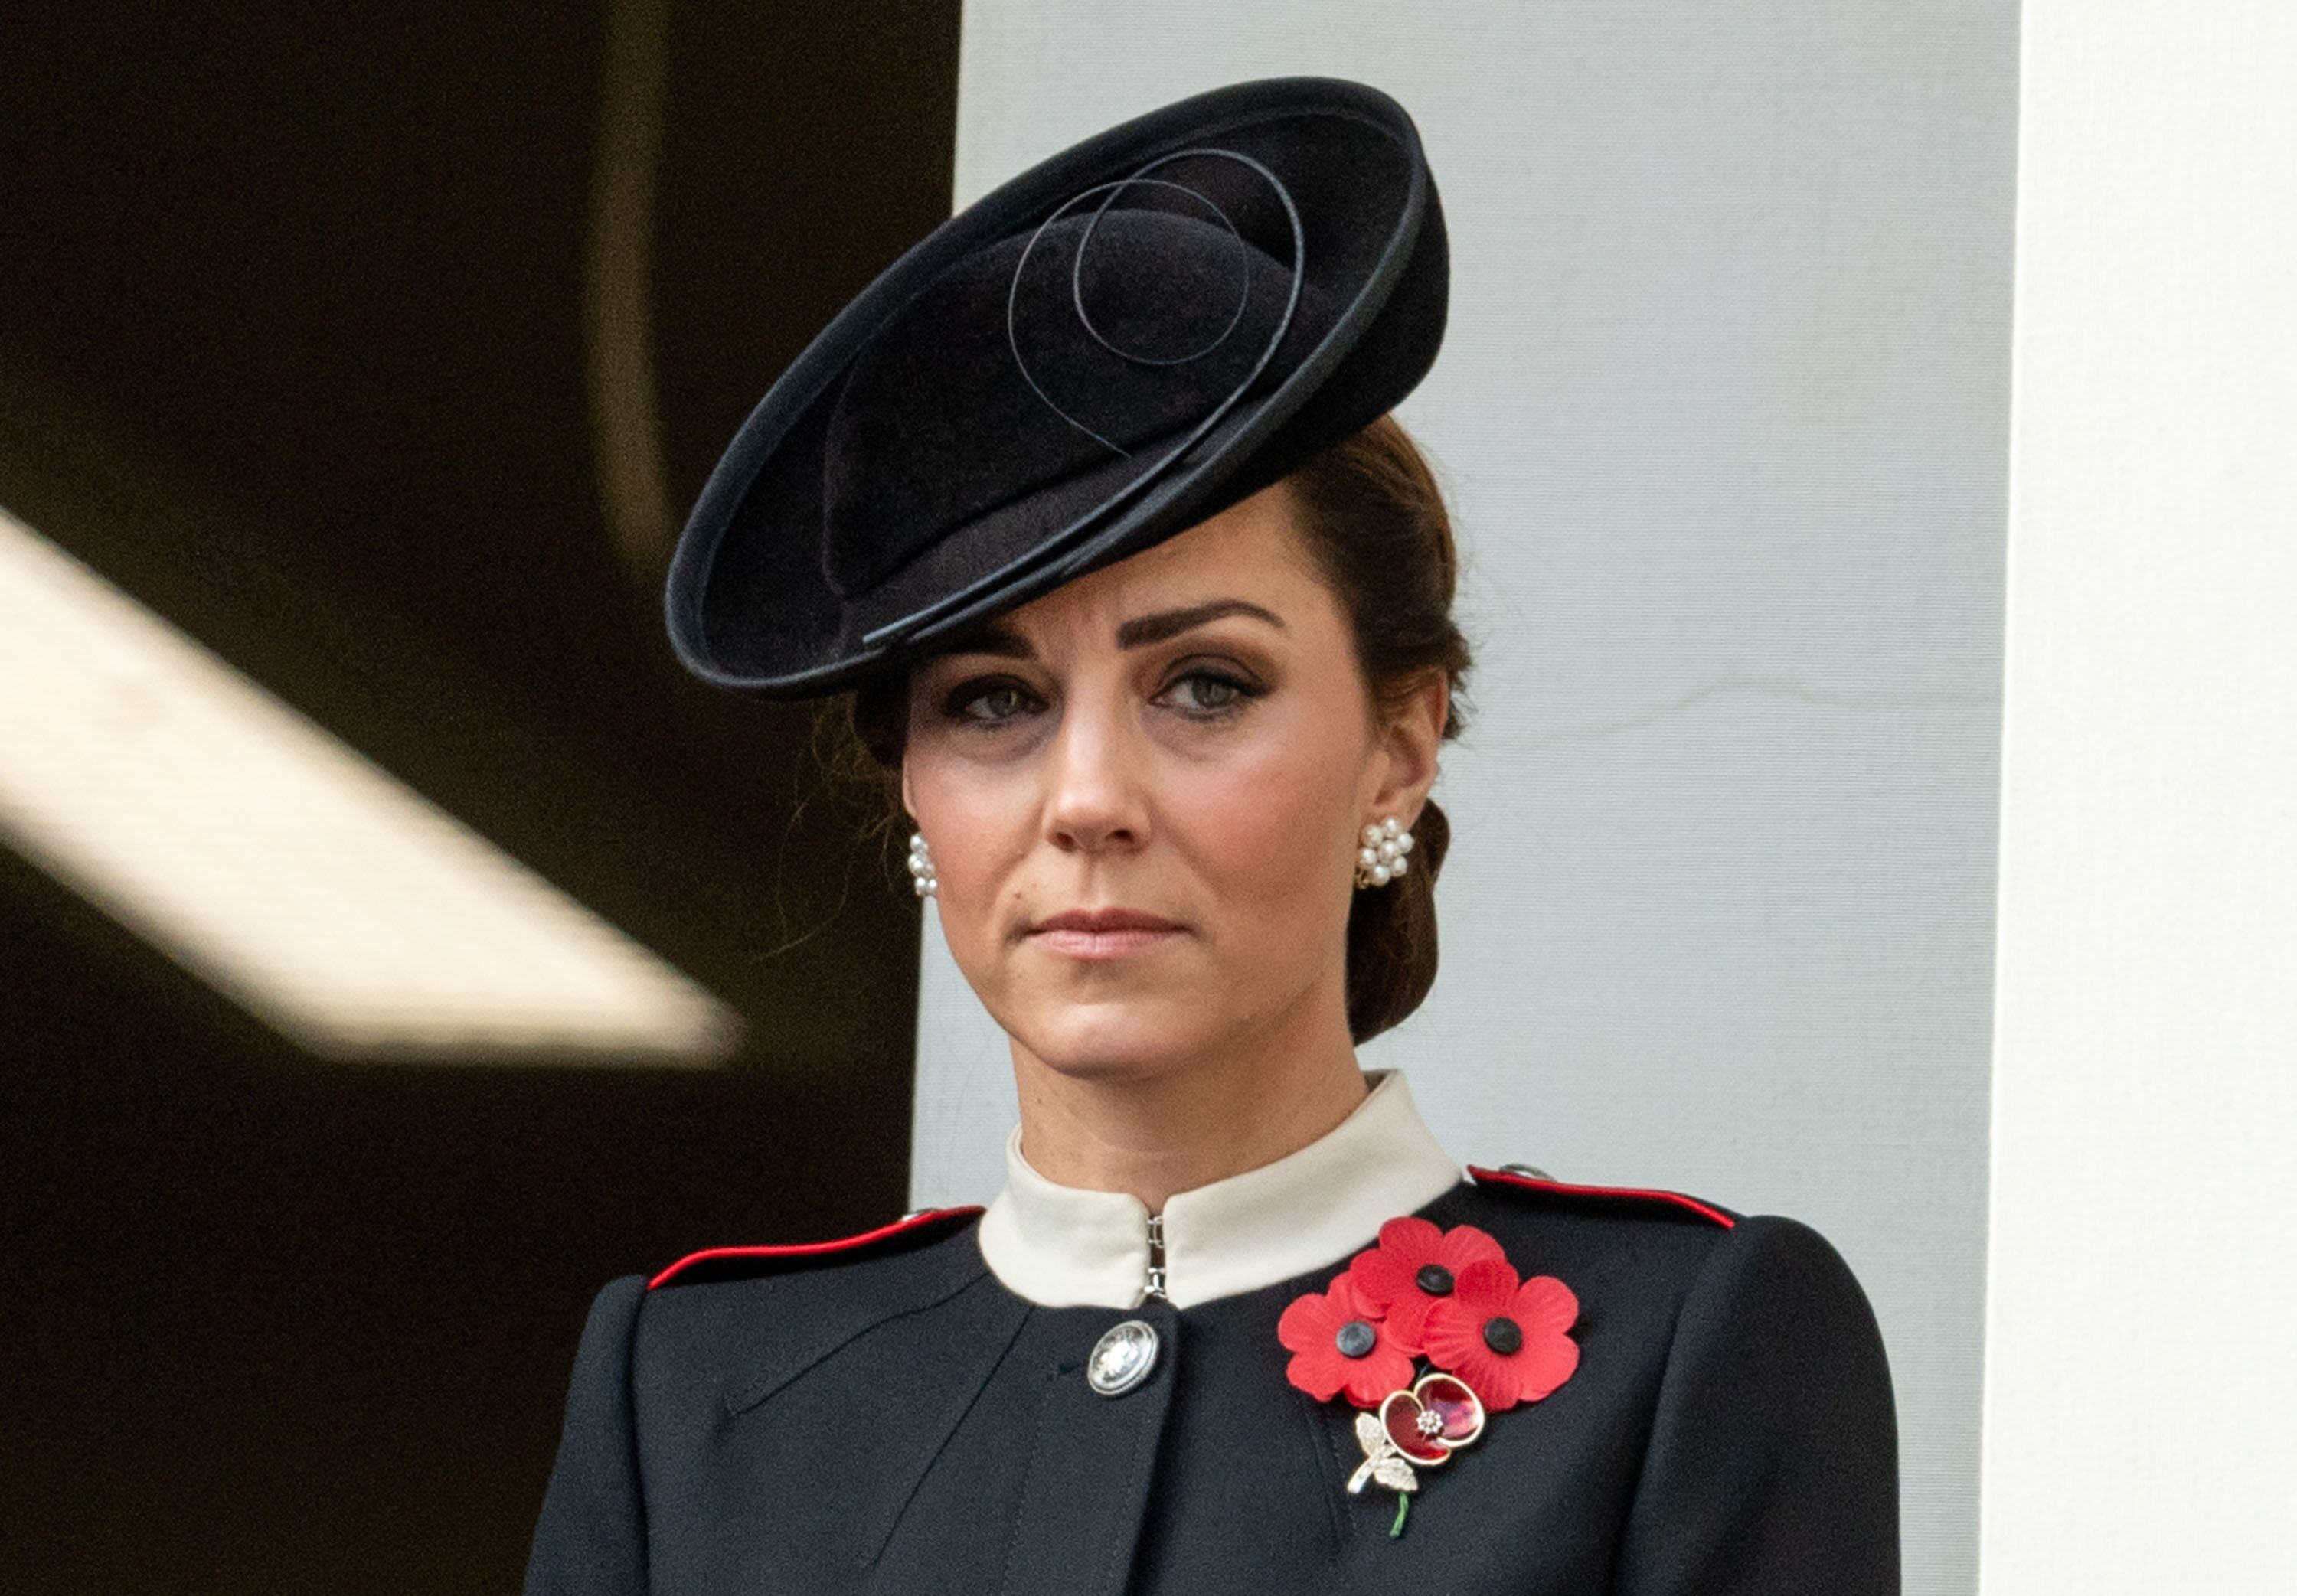 Kate Middleton during the annual Remembrance Sunday memorial at the Cenotaph on November 11, 2018 in London, England. | Source: Getty Images